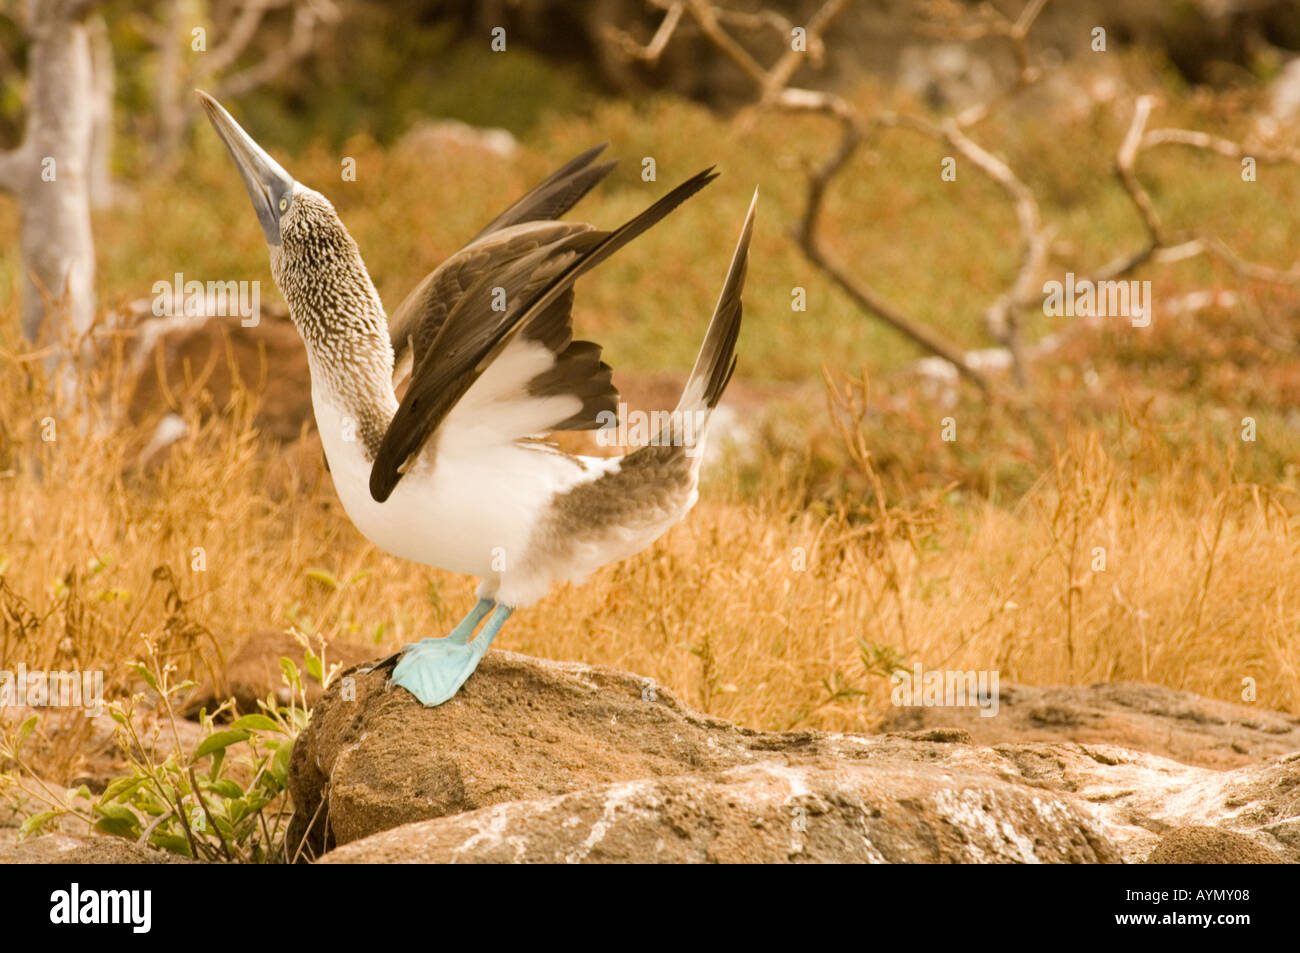 Blue-footed booby (Sula Nebouxii excisa) sky pointing courtship display Seymour Galapagos Ecuador Pacific Ocean Stock Photo